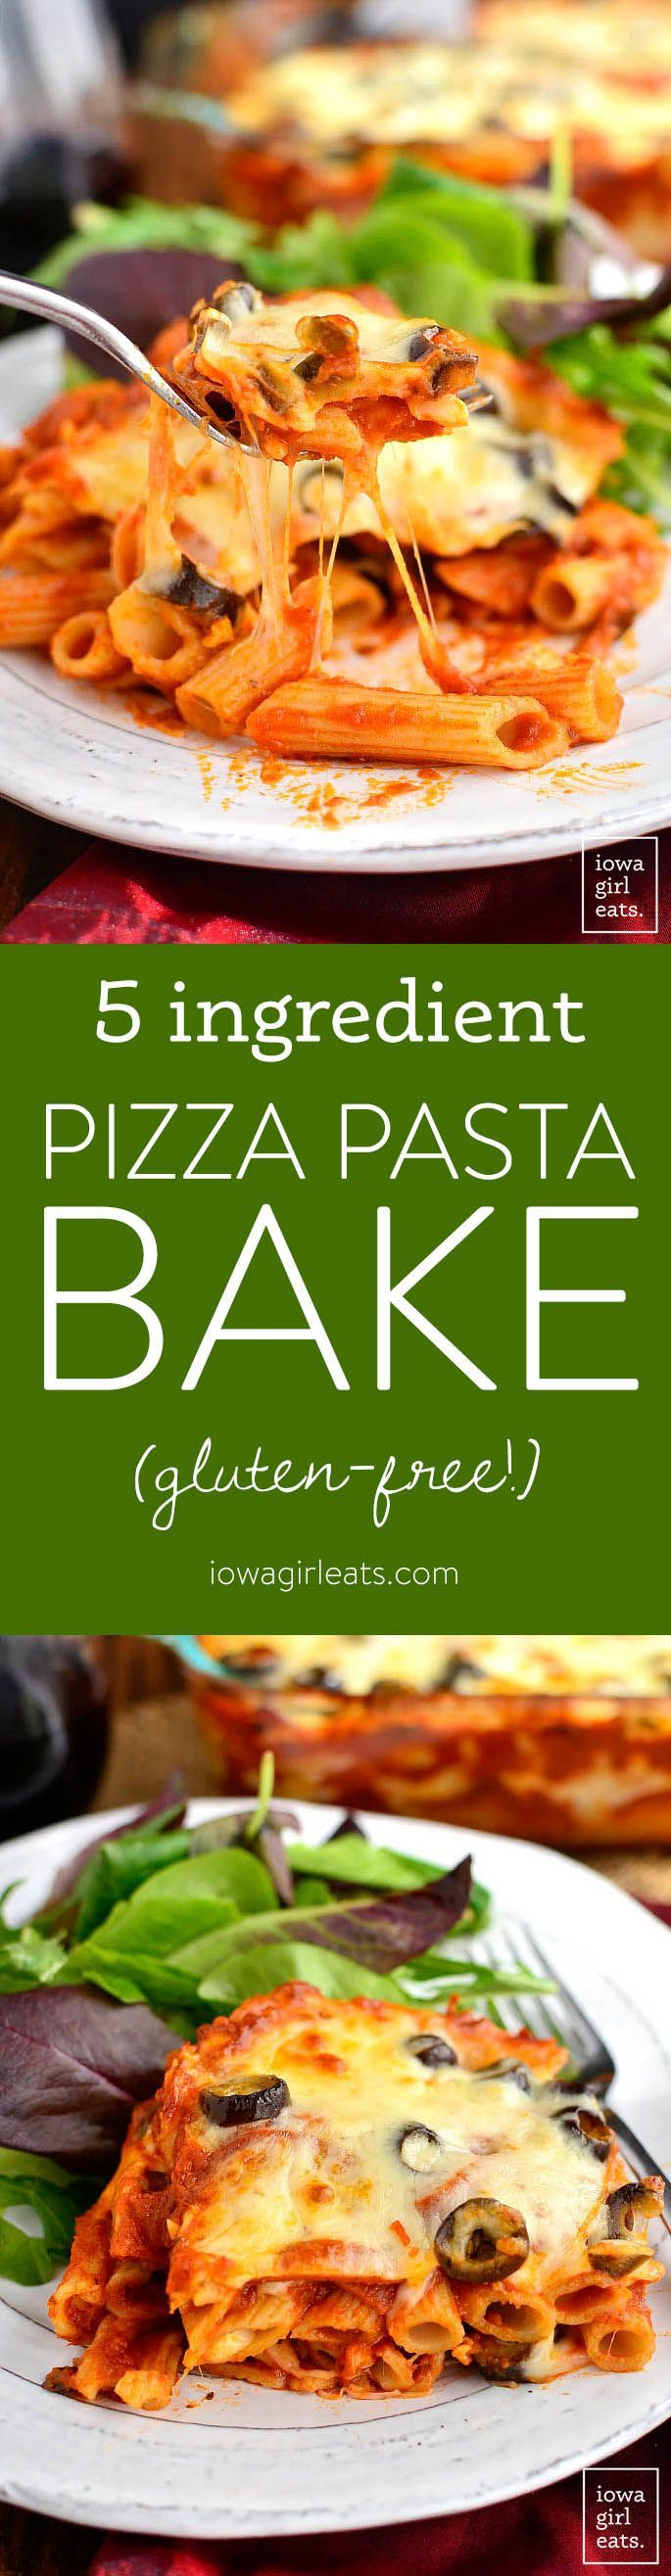 5-Ingredient Pizza Pasta Bake is a cheesy and decadent gluten-free casserole recipe that will let you get your pizza fix without calling for delivery! | iowagirleats.com #glutenfree